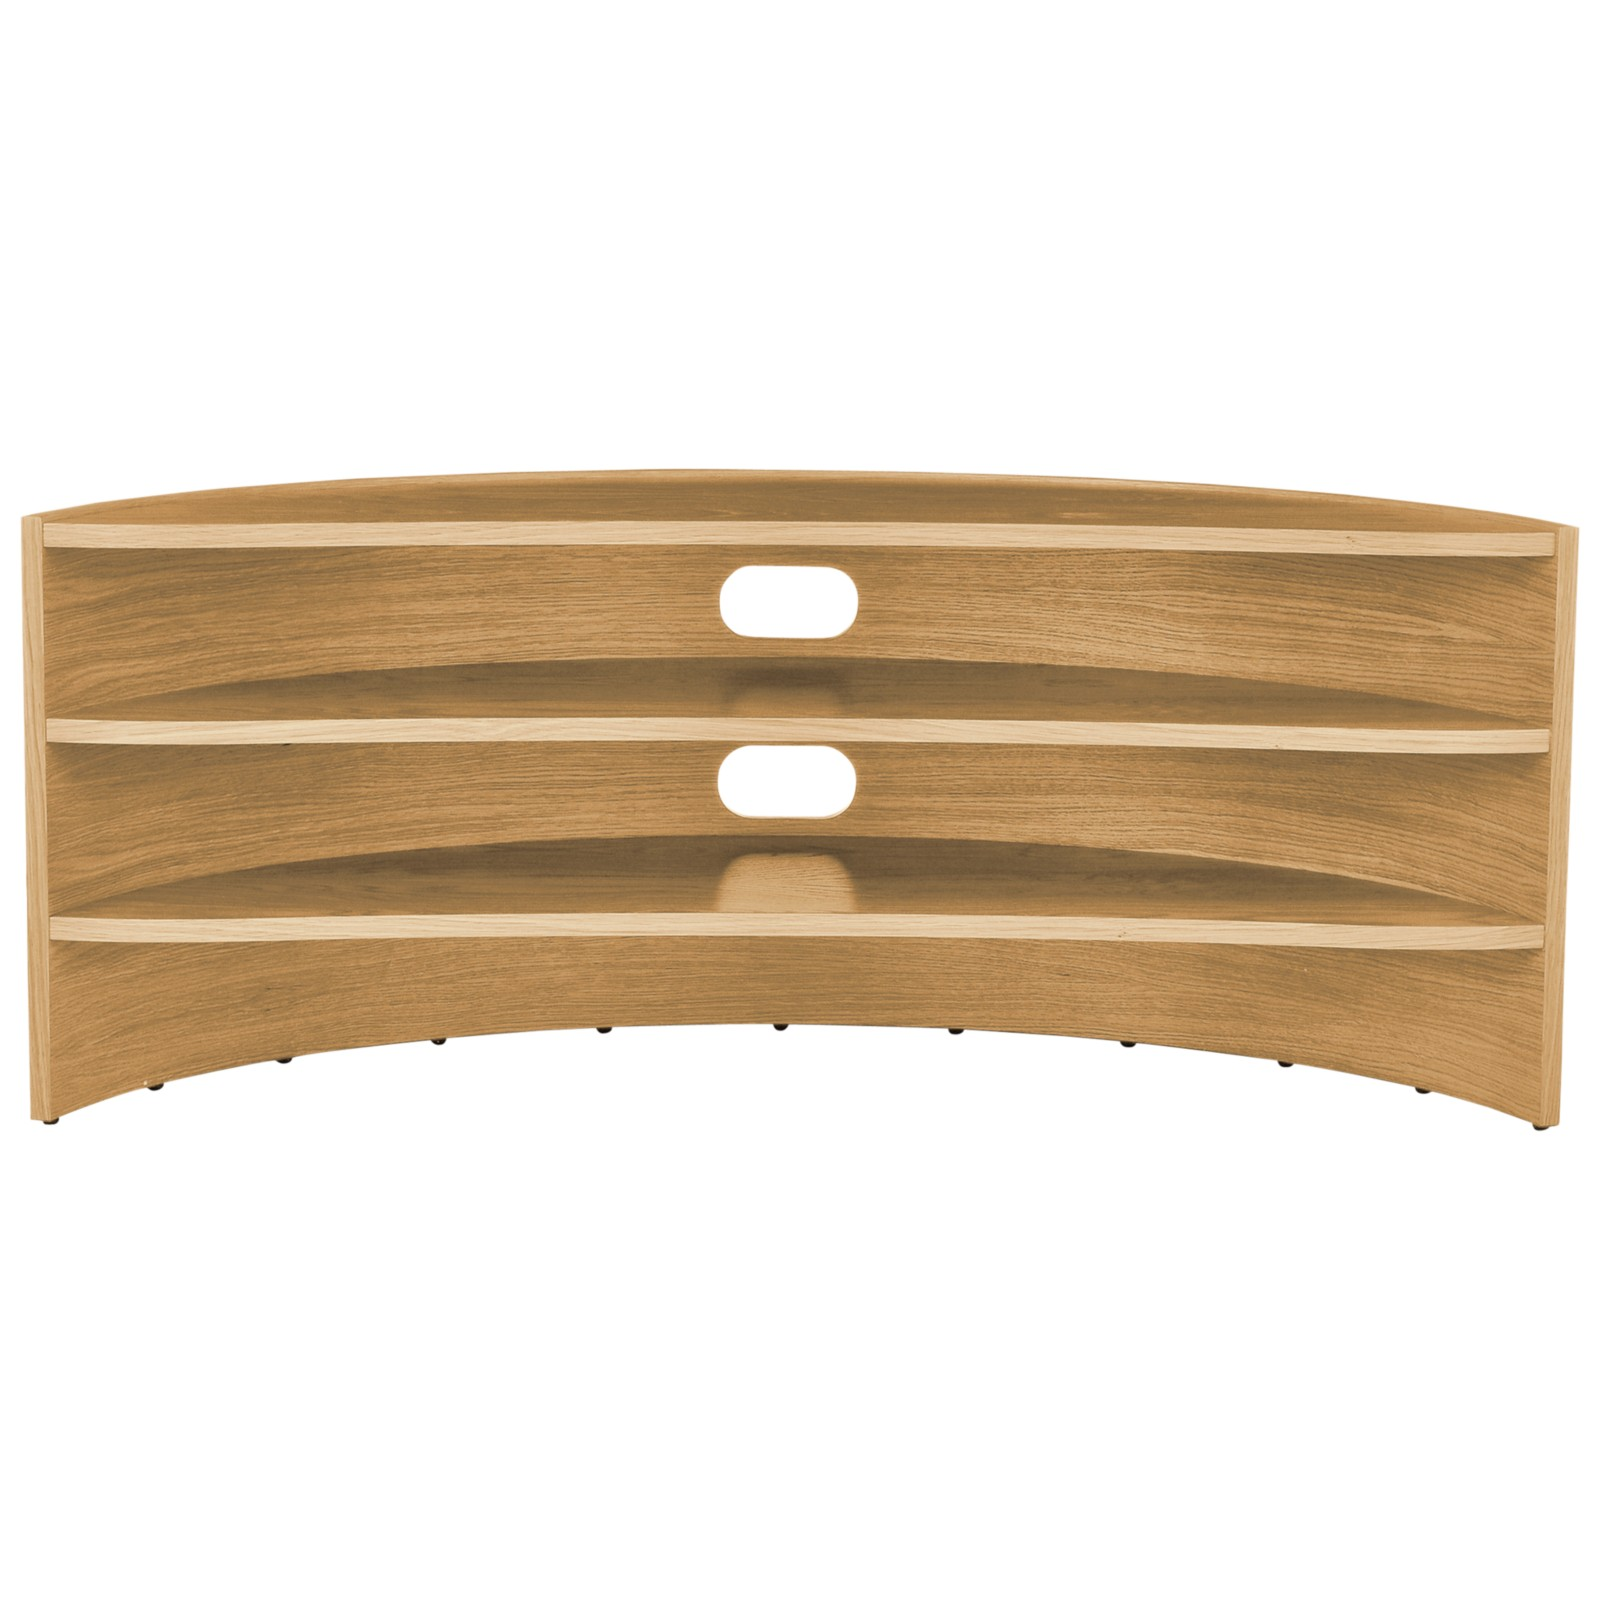 "Tom Schneider Curvature 1500 TV Stand for TVs up to 65"" Oak"